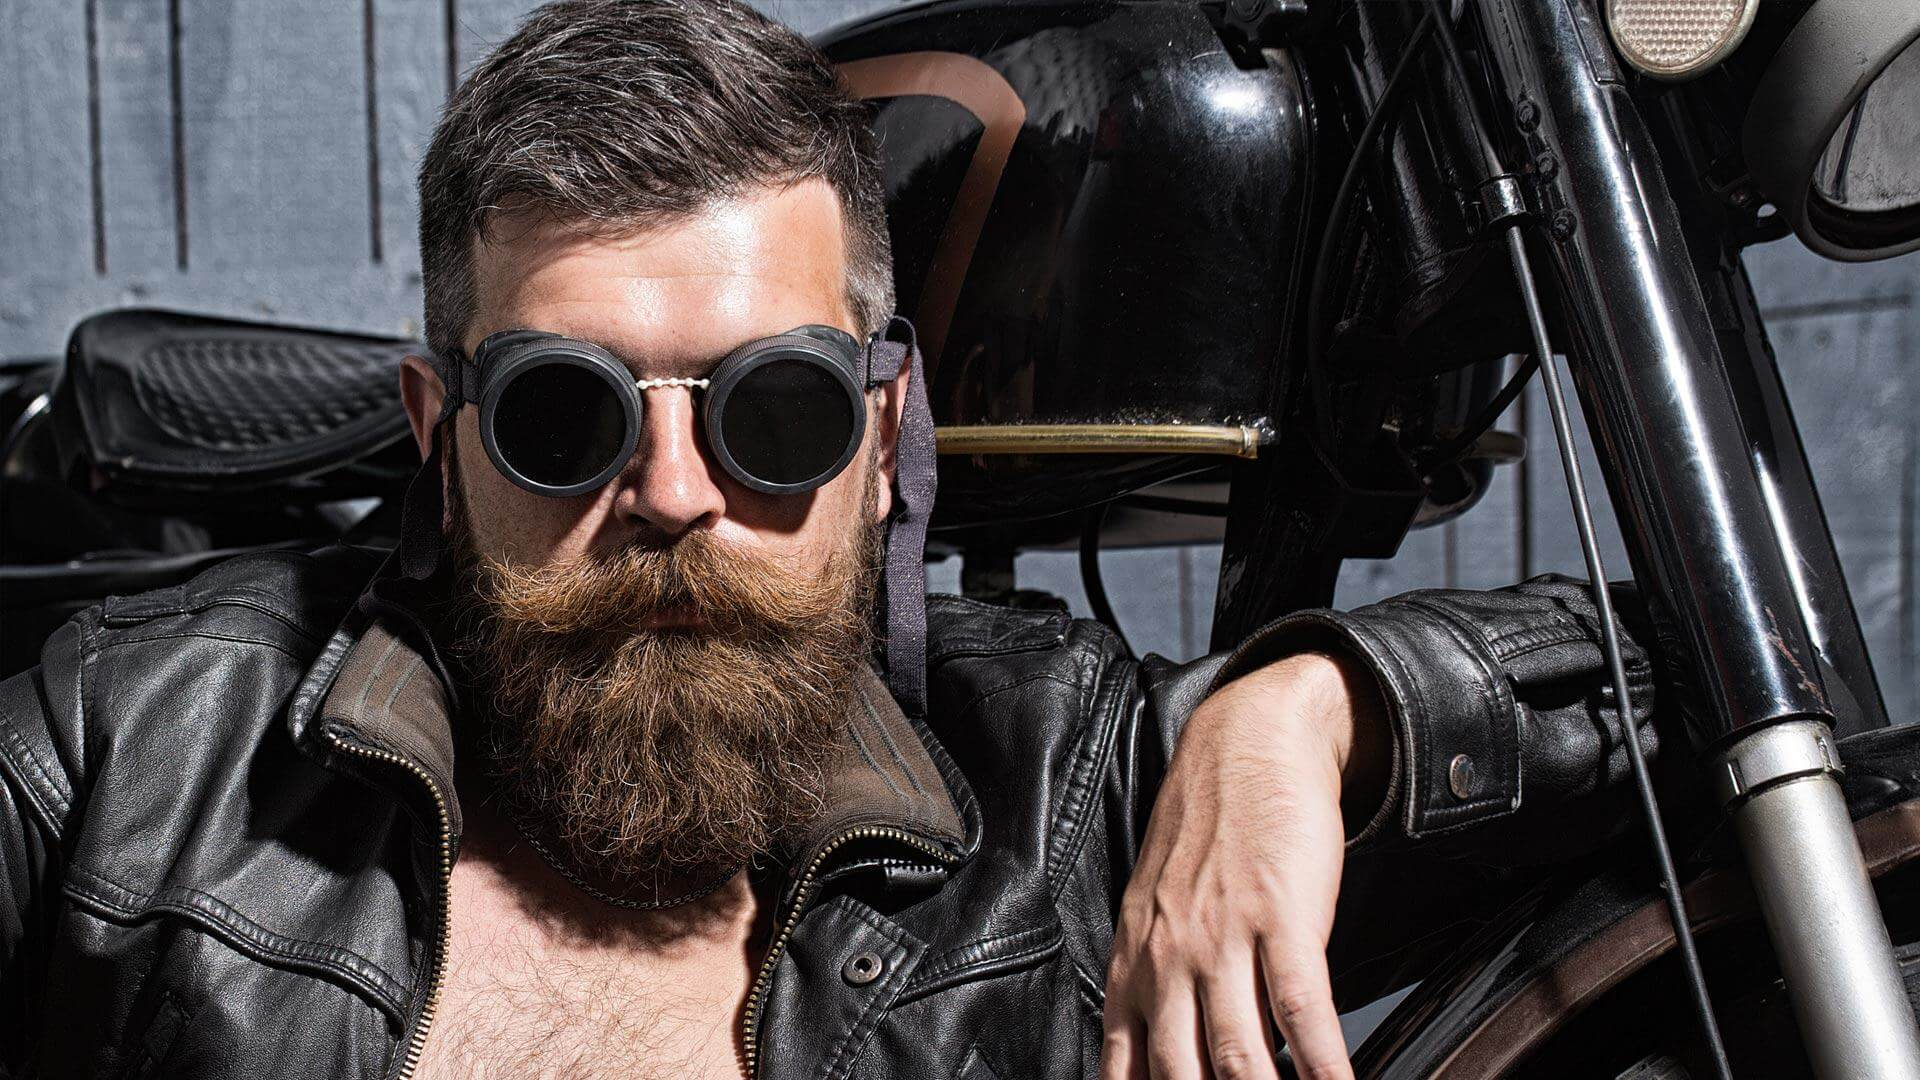 Wild beards are going to need a wild wax. Lock down or style wayward strands and annoying curls with our superior, all natural, easy pliable & lightly scented beard wax, Wild Substance from Beardifulman will help keep your looking sharp!